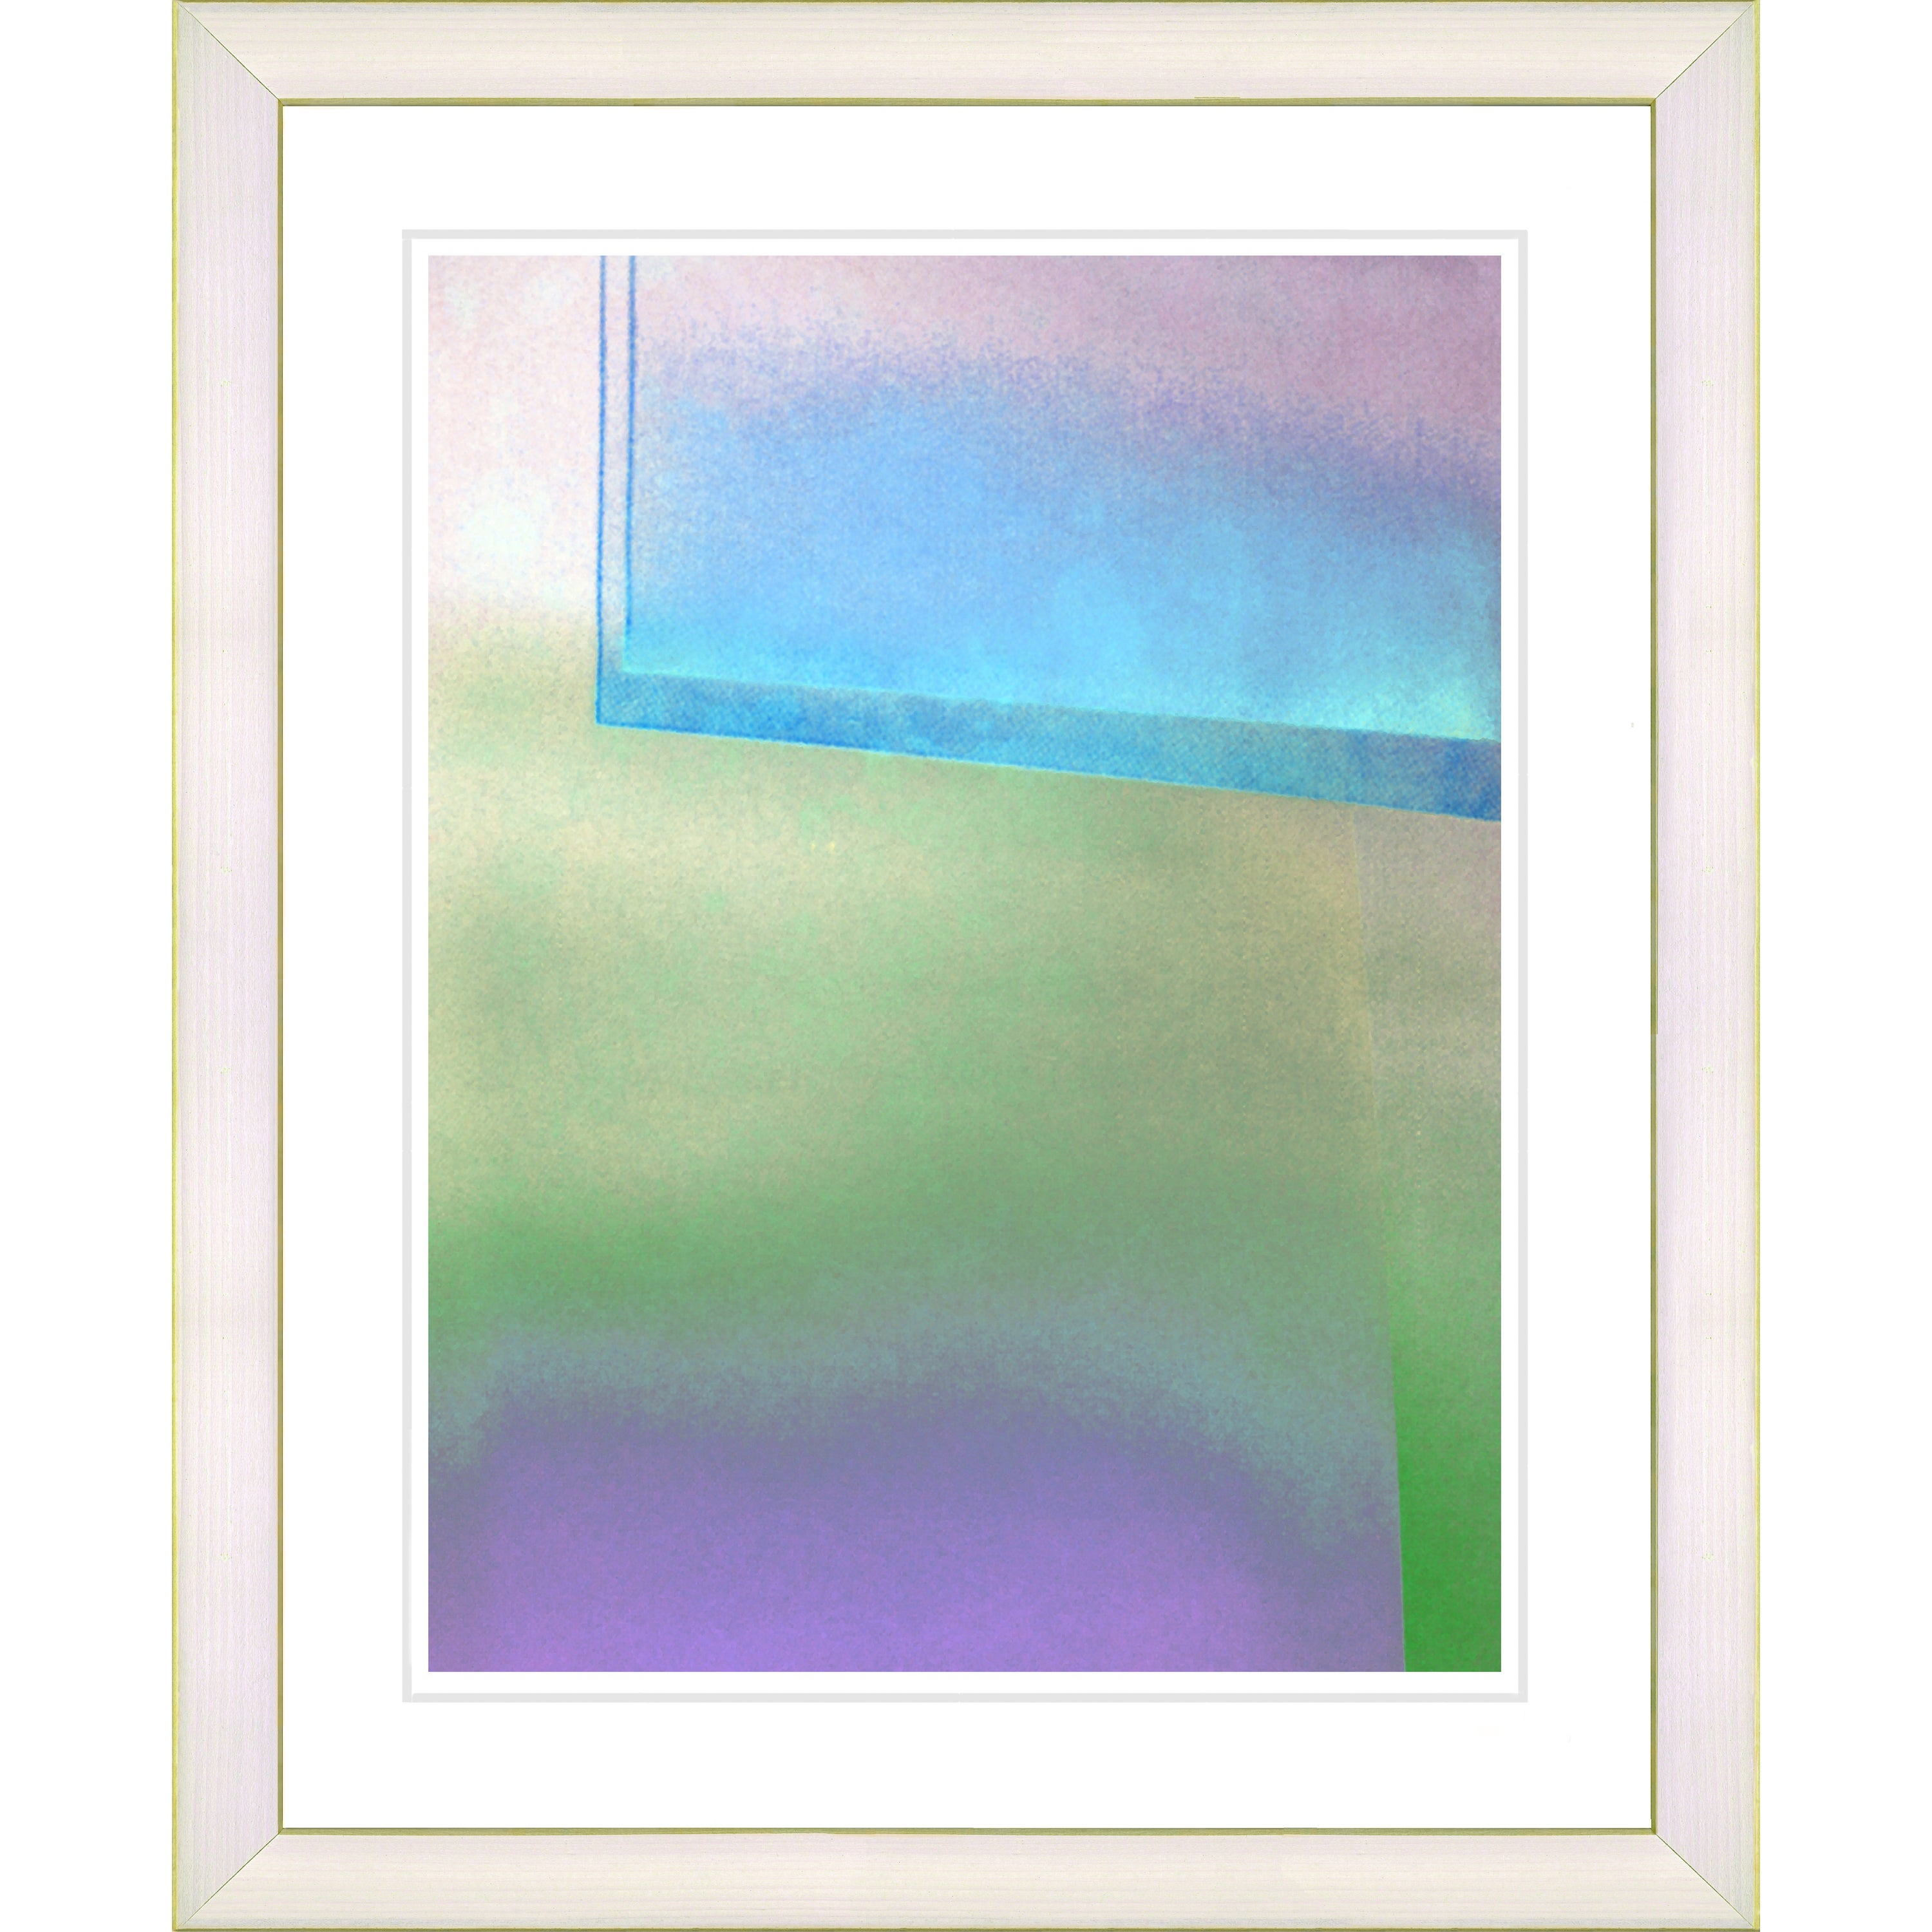 Overstock.com Zhee Singer 'Umfolozi - Blue' White Framed Print at Sears.com